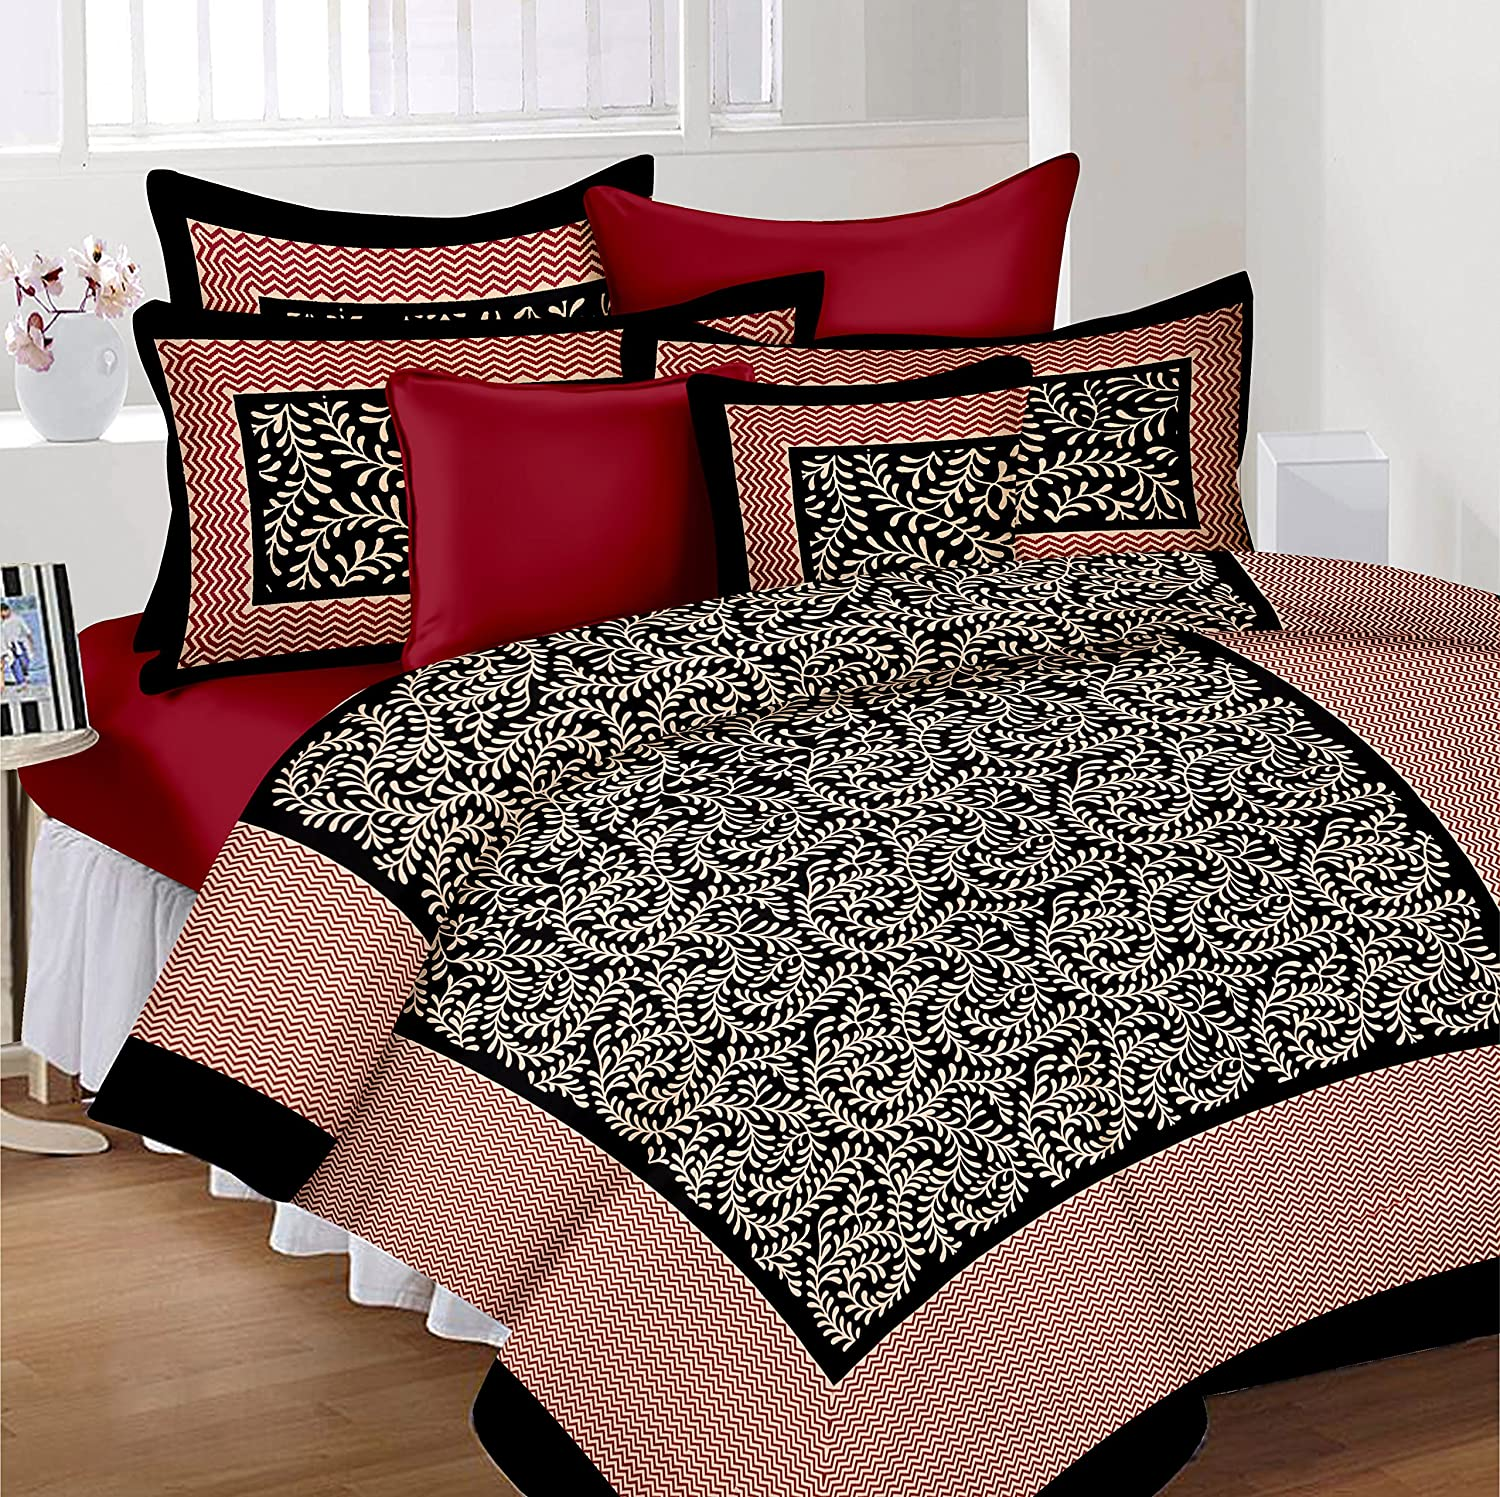 Lali prints traditional jaipuri block 185 tc cotton bedsheet with 2 pillow covers king size multicolour amazon in home kitchen